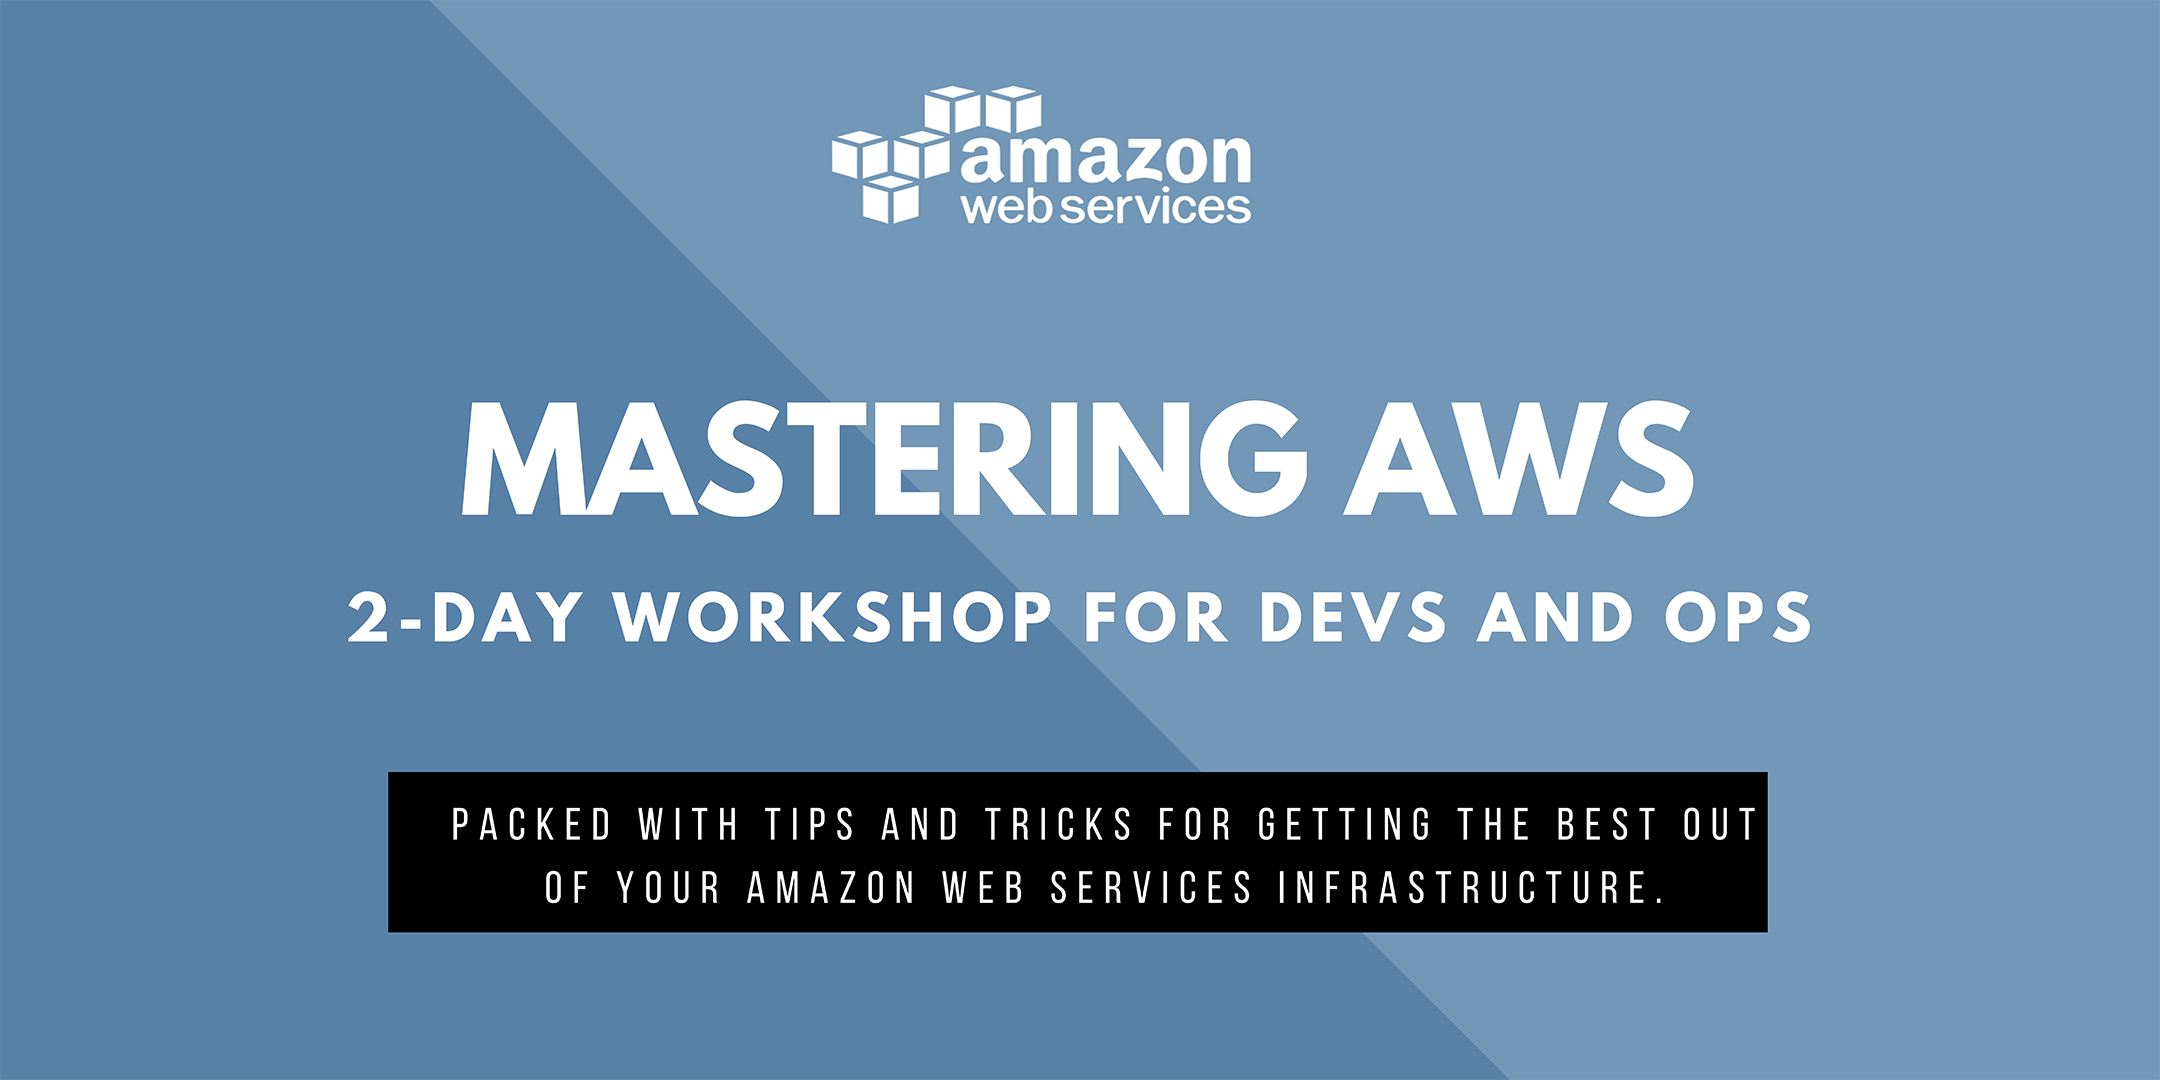 TOP Mastering Amazon Web Services (Edinburgh)